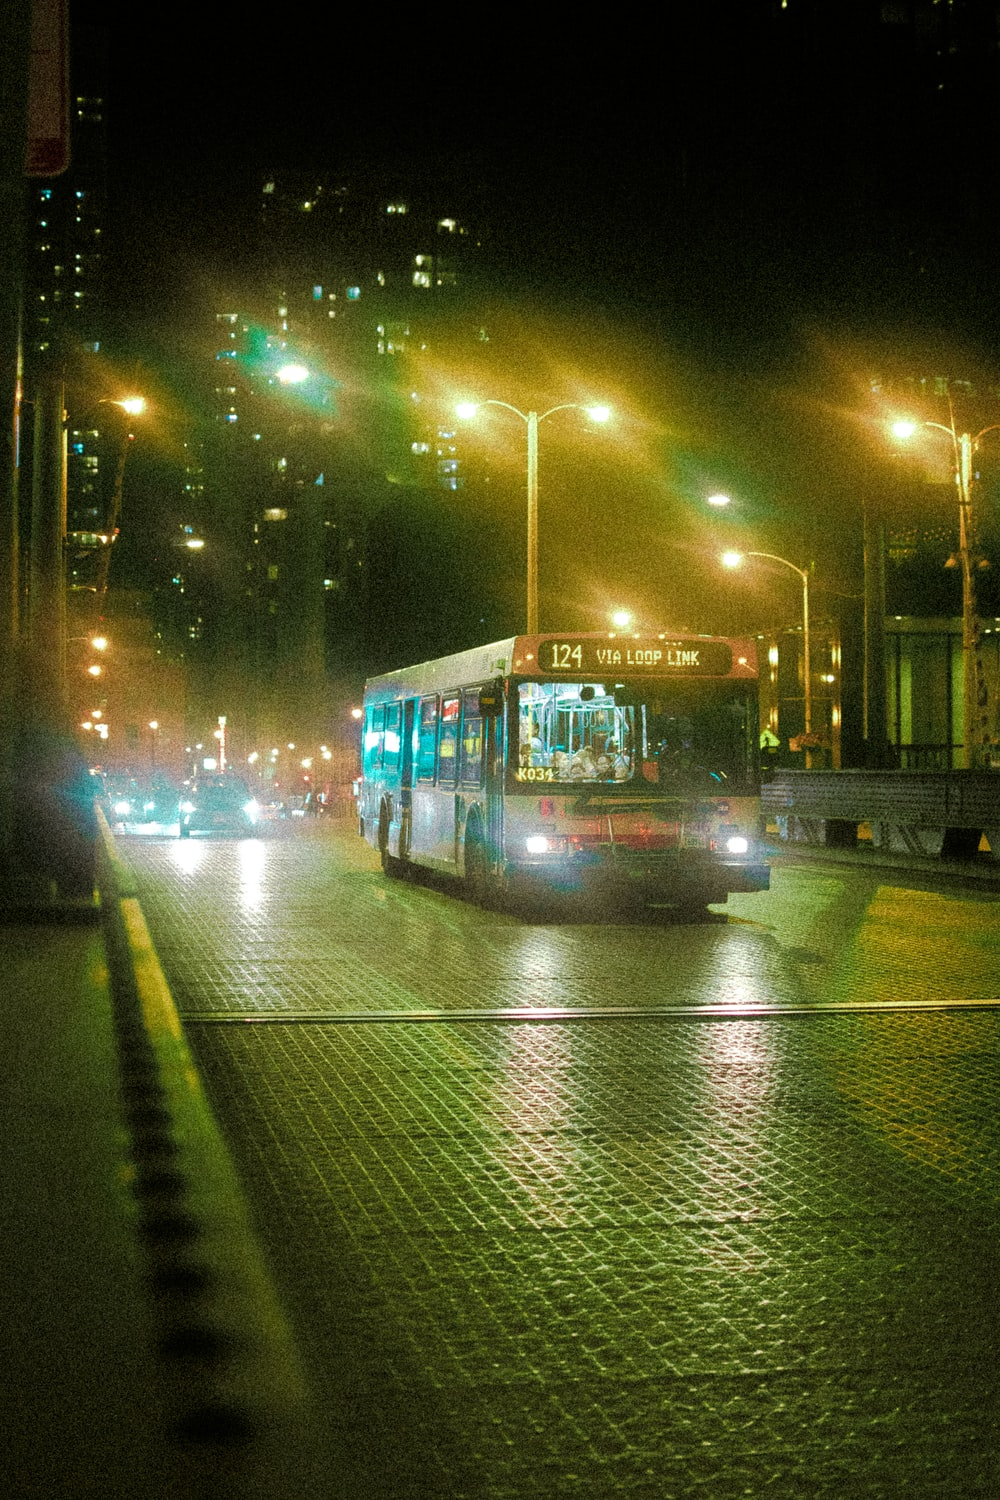 grey bus on road